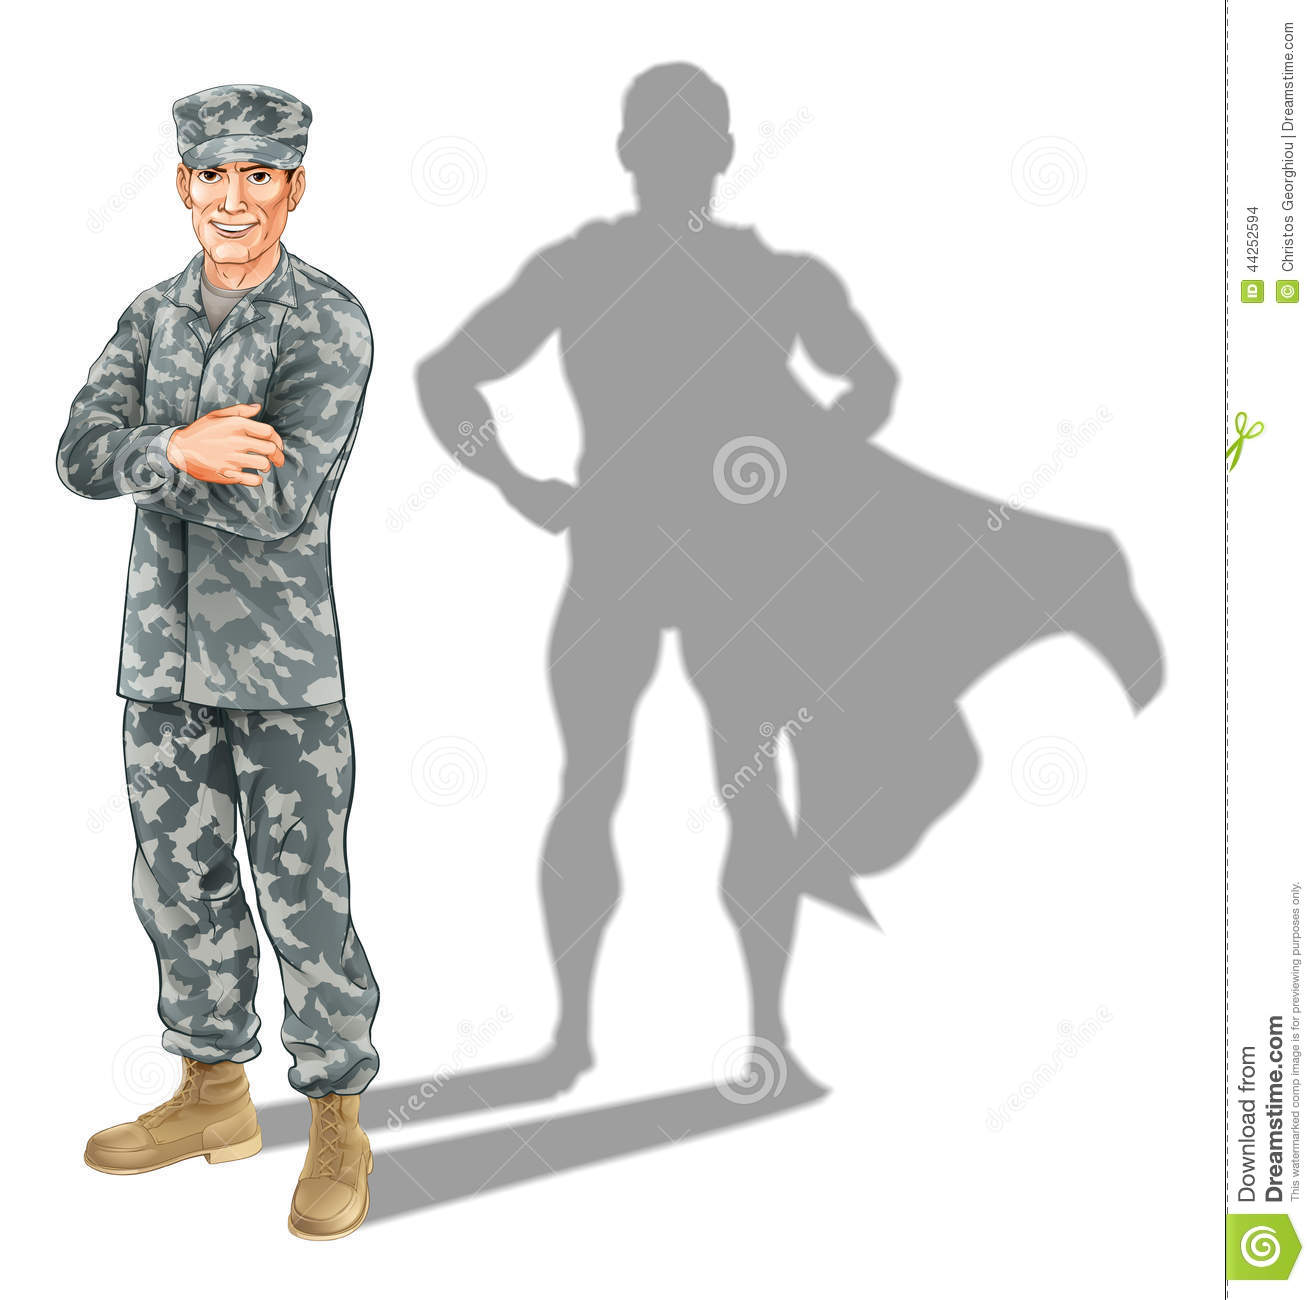 veteran christian singles Military living can sometimes be a difficult setting for christians single service members living on the installation might encounter plenty of parties and other events that are not.